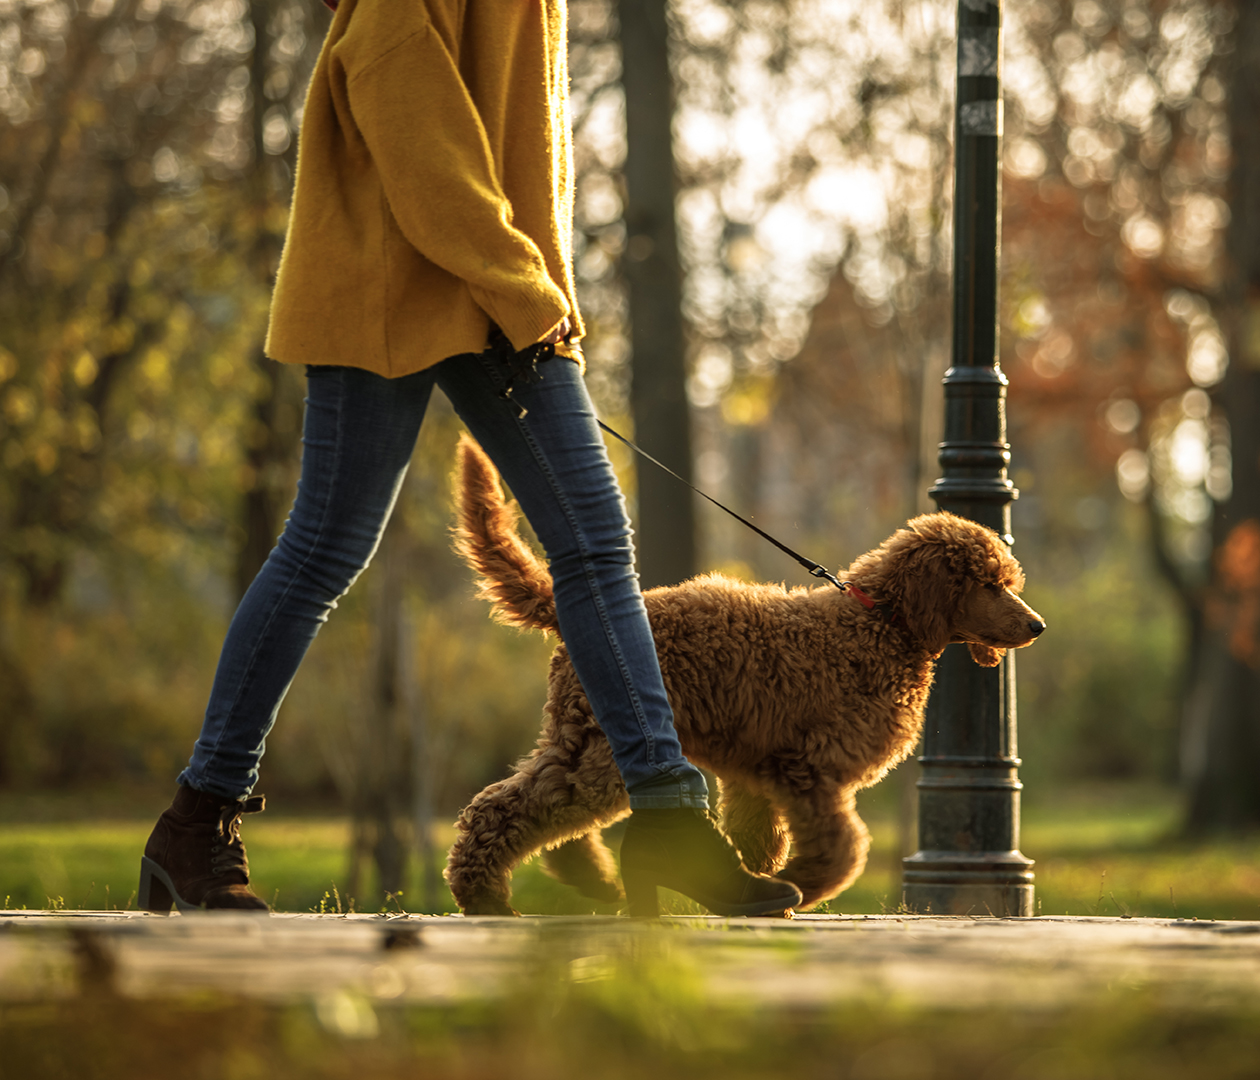 Woman walking with poodle in a park